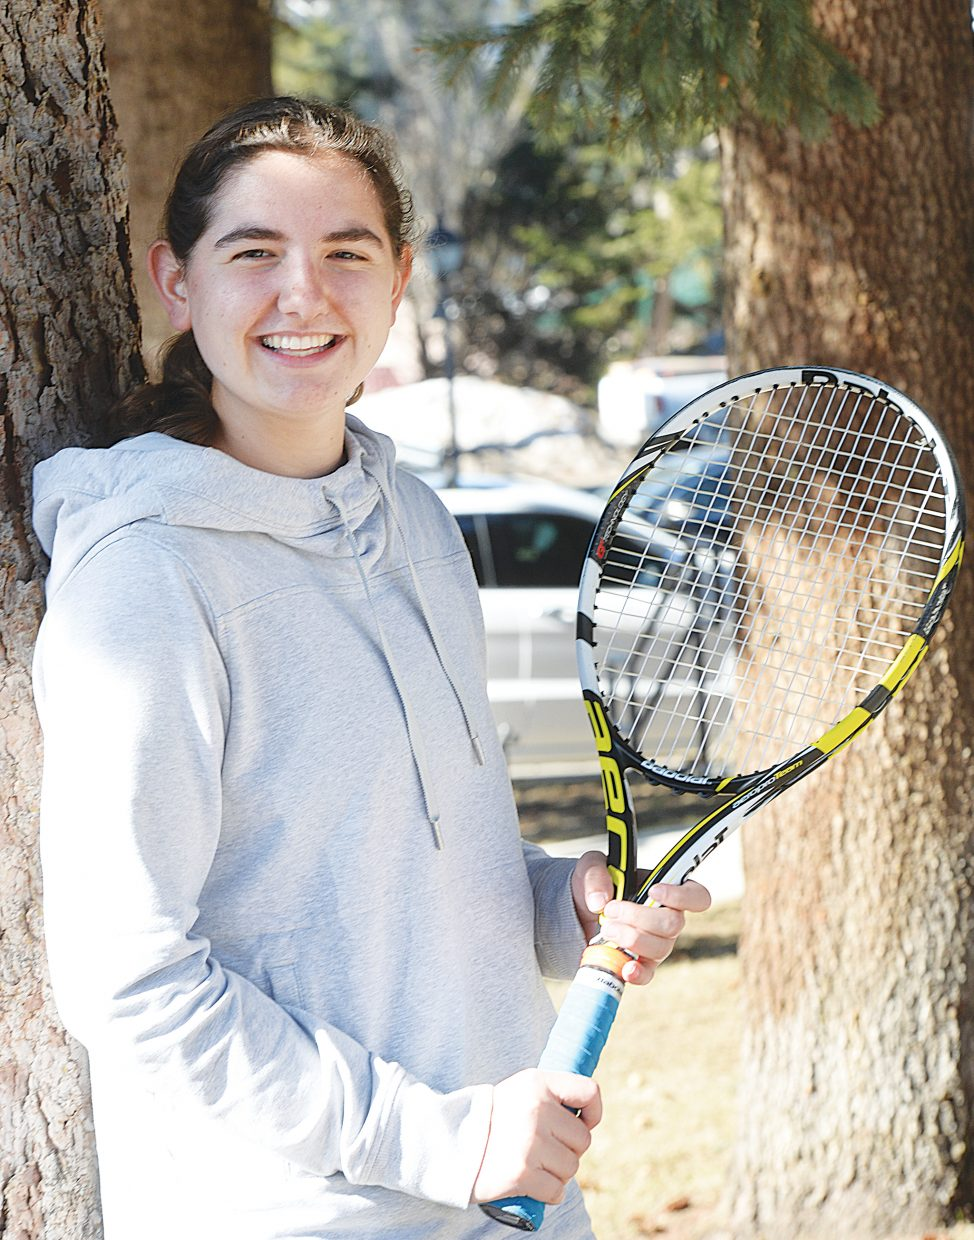 Getting back on the court is the goal of Steamboat Springs High School senior Emi Thompson. Thompson's senior season was delayed, but on Thursday, she returned to the court for the first matches of the year.